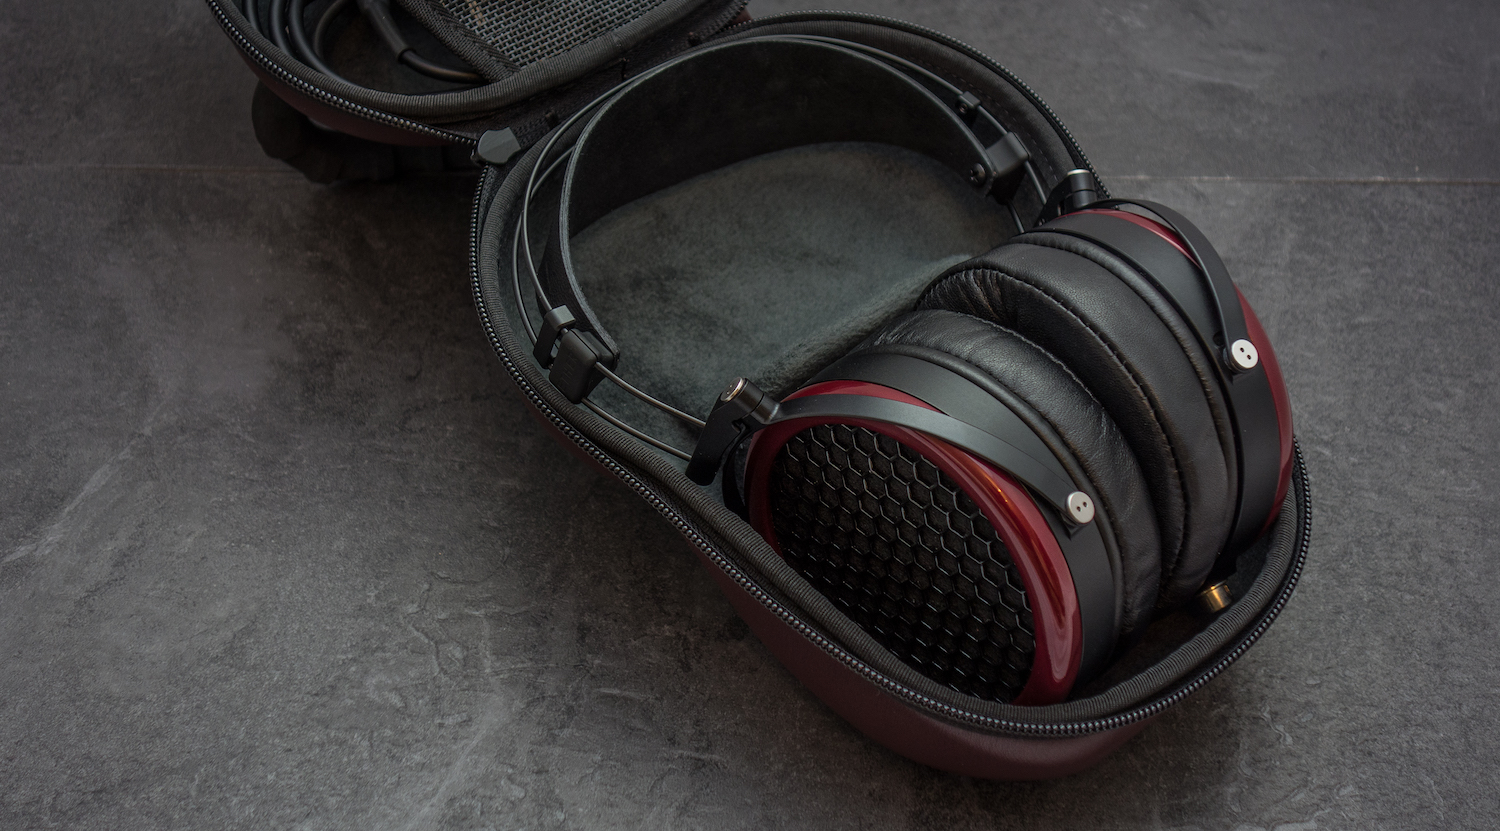 The Mr Speakers Ether now comes with one of the best headphone cases we have reviewed.